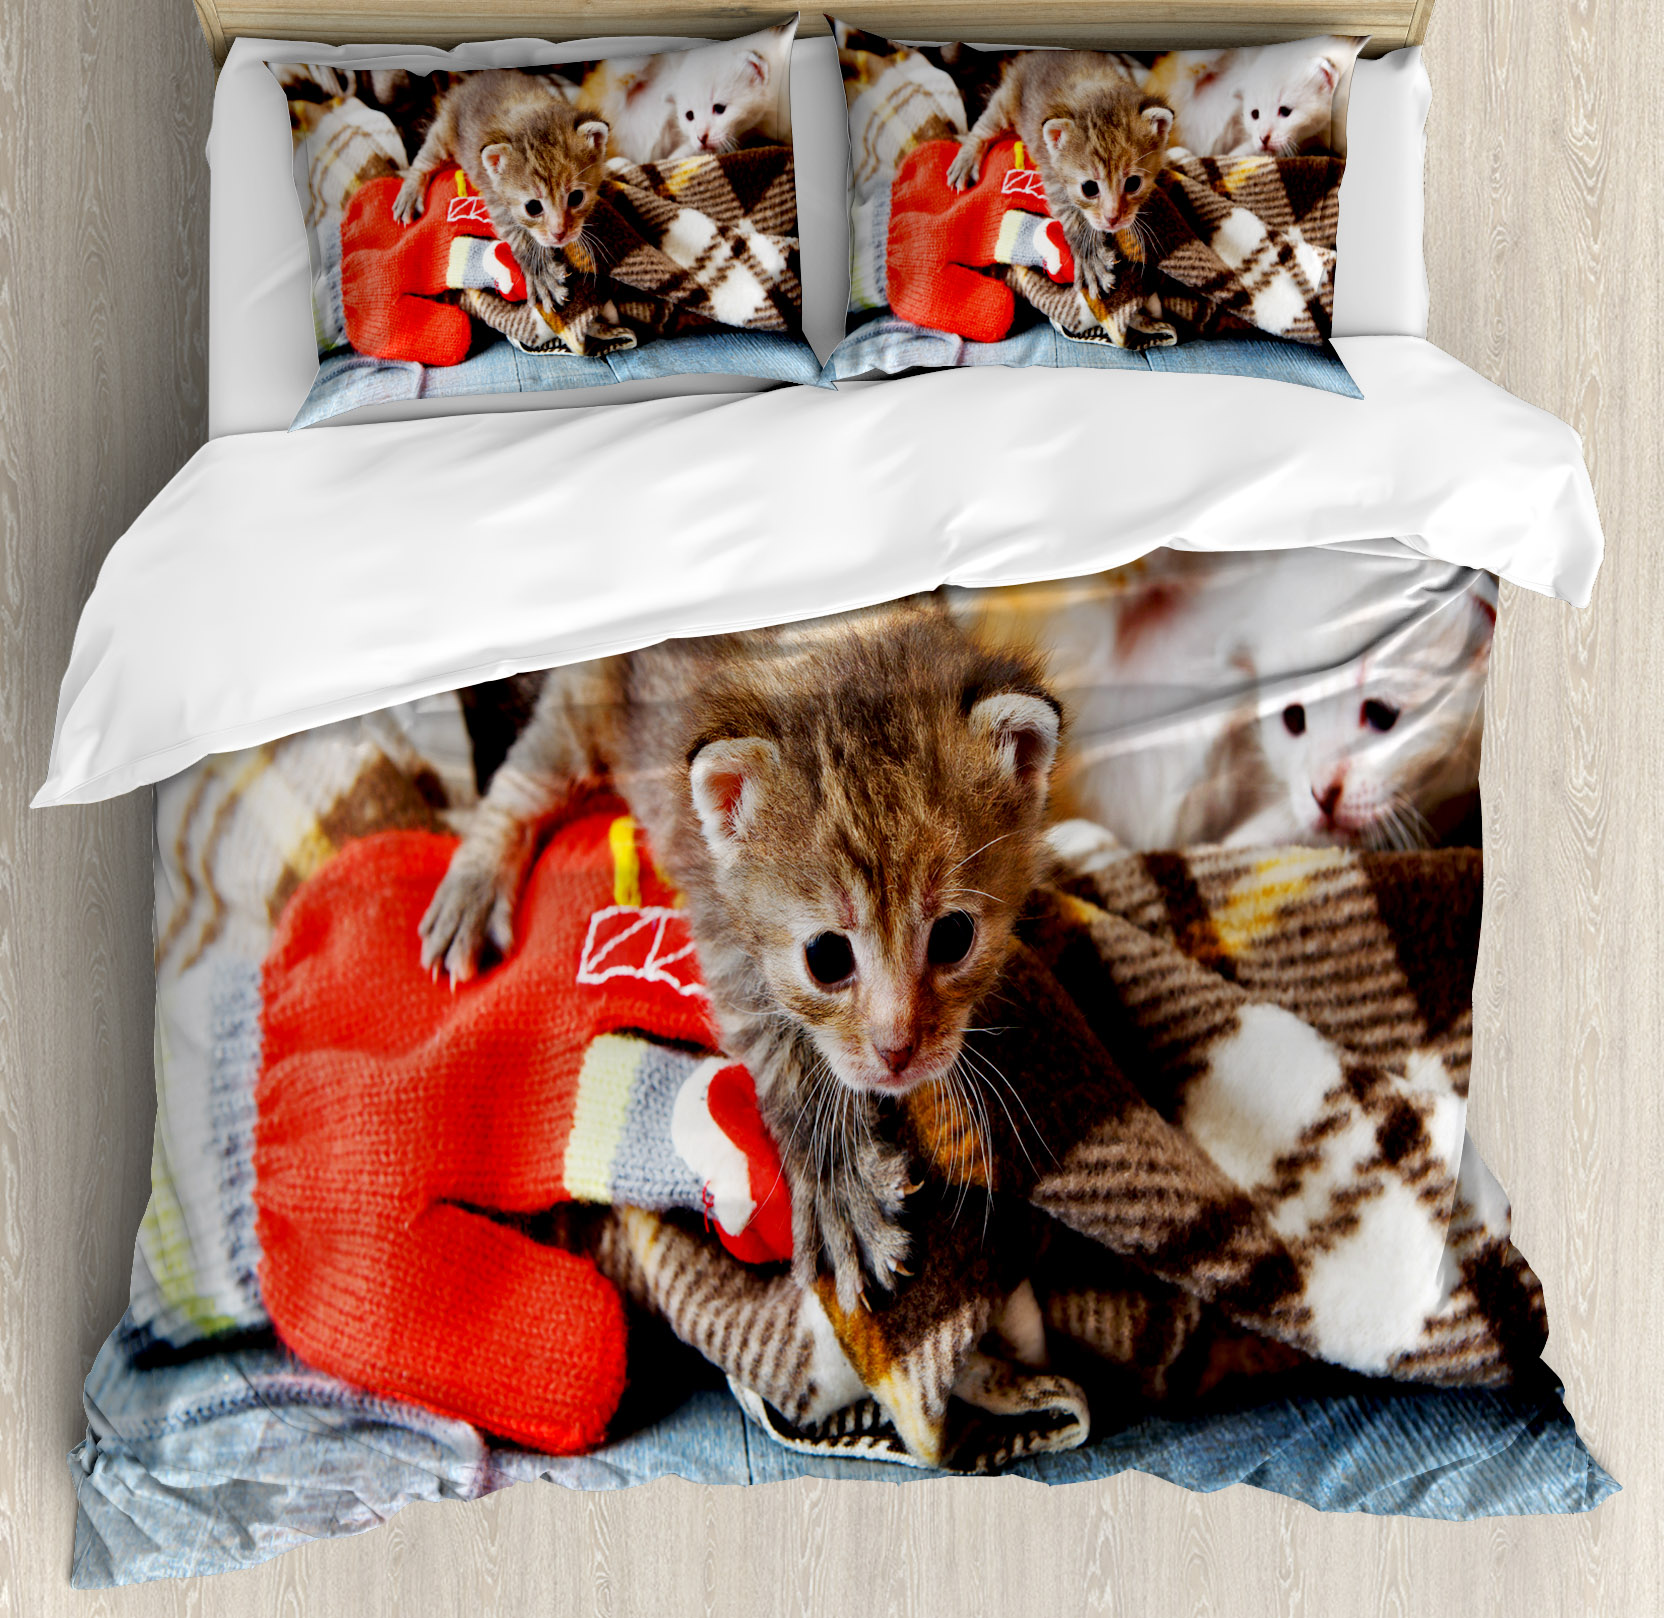 Cats Duvet Cover Set, Kittens and Mittens Newborns Baby Animals in an Plain Blanket Wood Play Toys Adorable,... by Kozmos